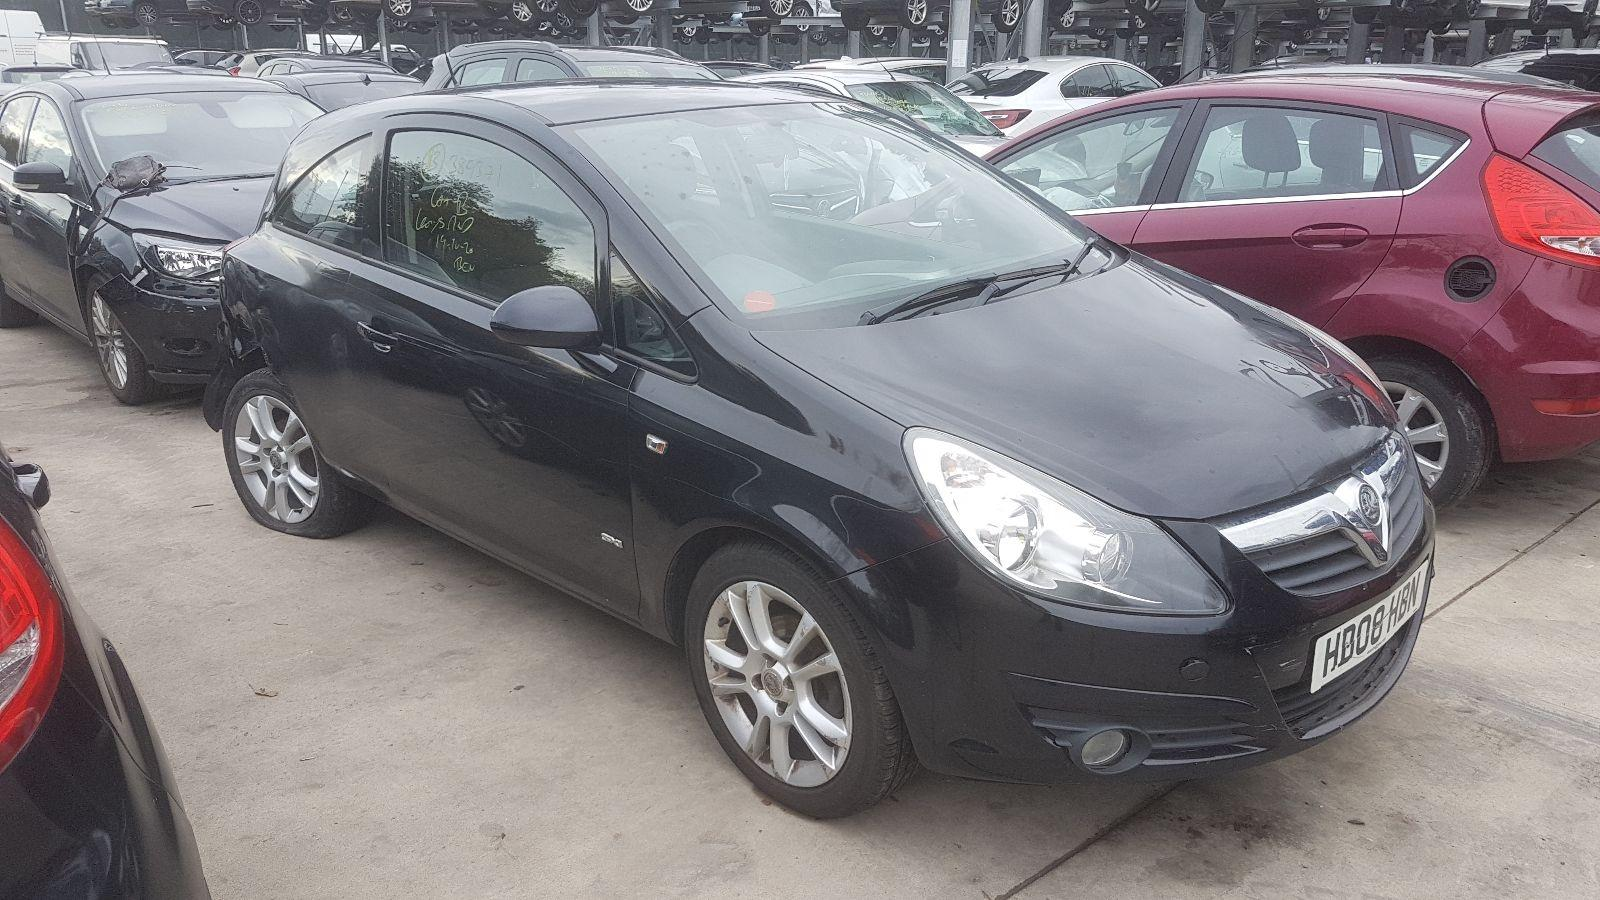 Image for a 2008 Vauxhall Corsa 1.4  Z14XEP Engine